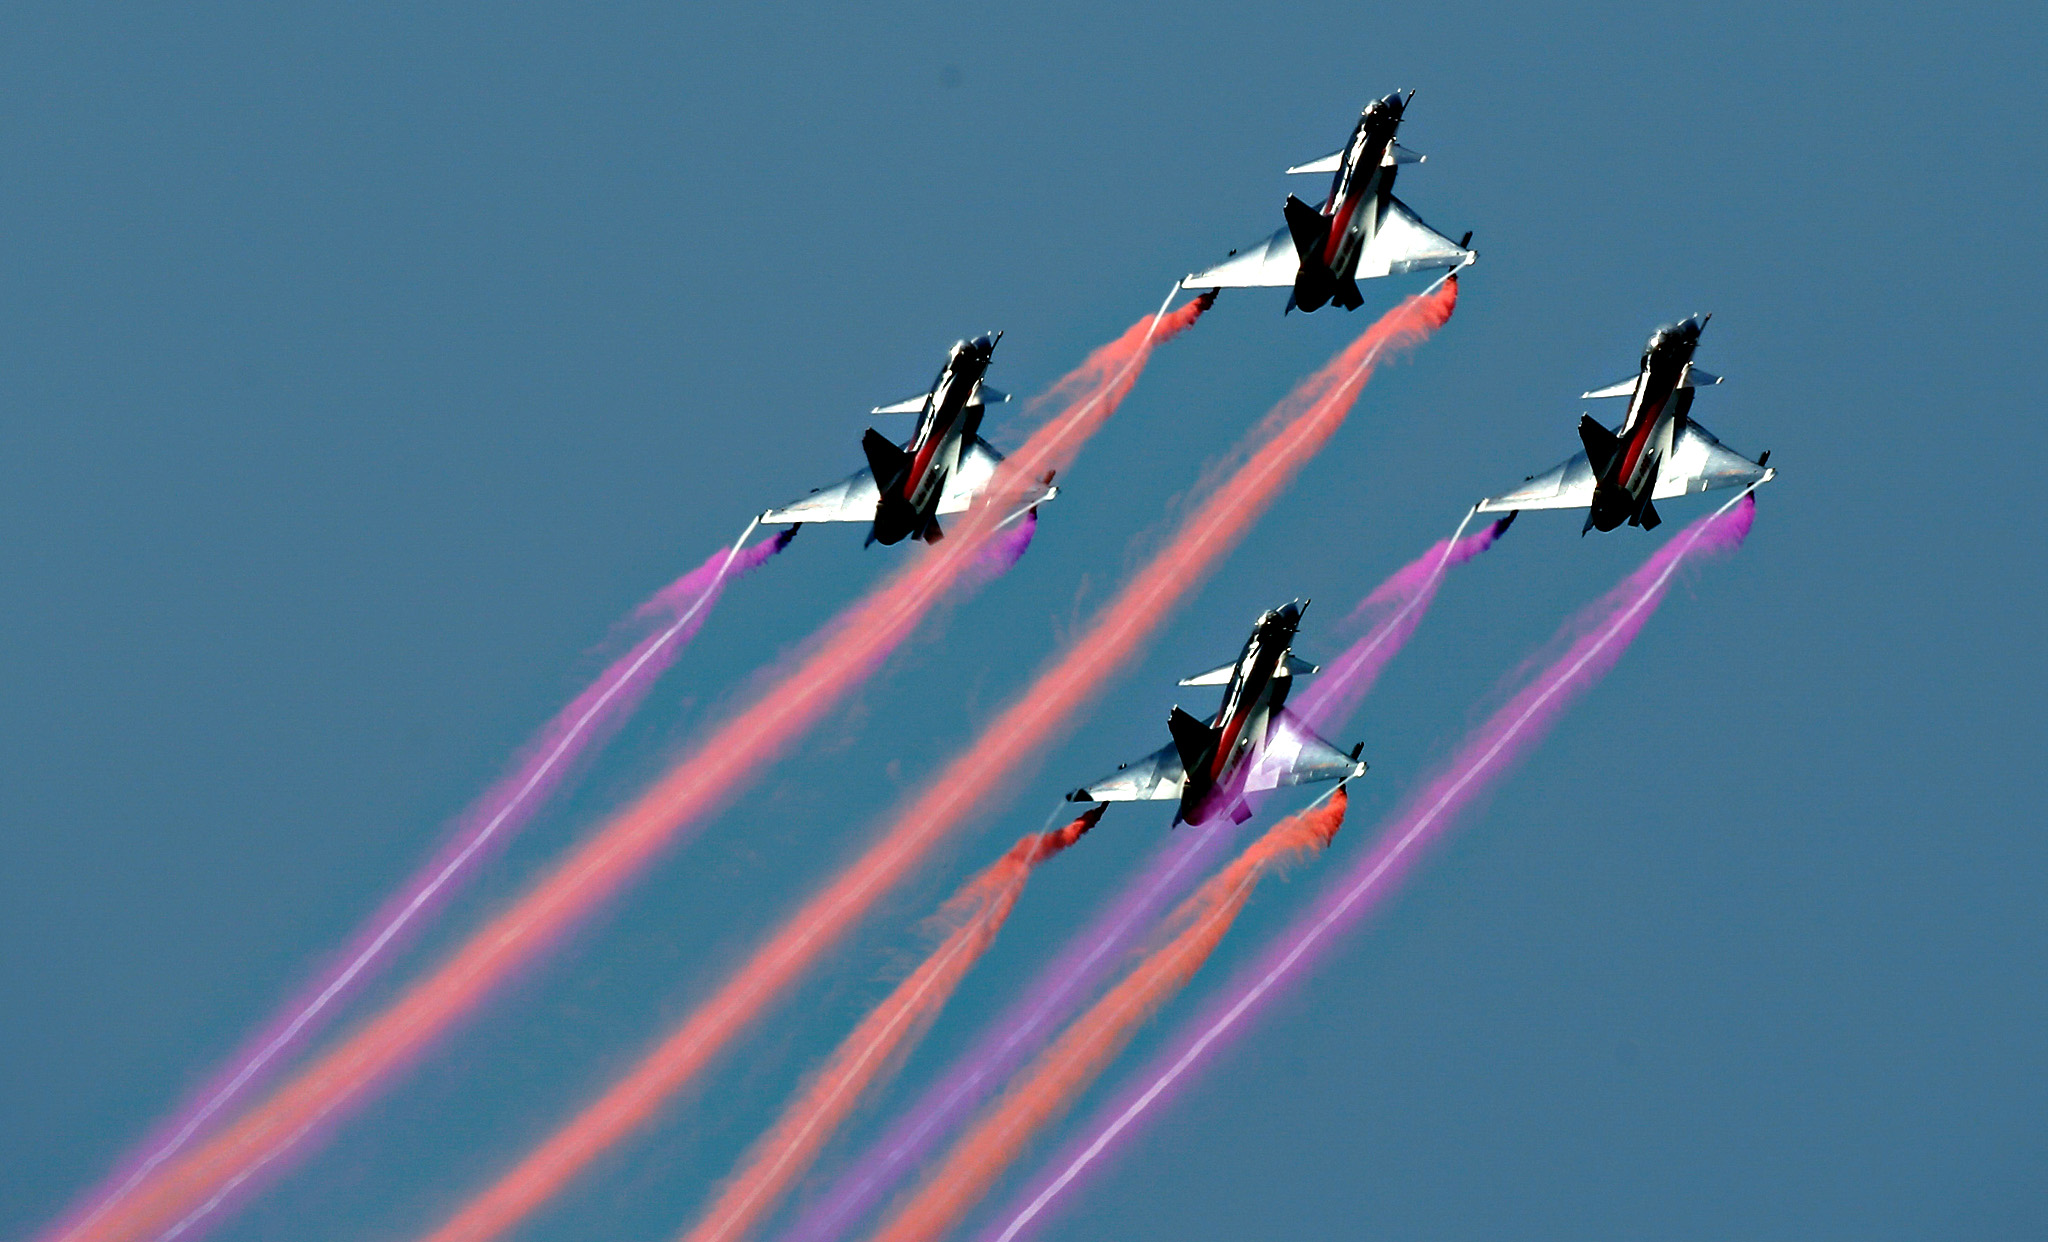 The People's Liberation Army's Air Force Air Demonstration Team, China's best-known aerobatic team, performs at Langkawi International Maritime and Aerospace Exhibition in Langkawi, Malaysia, on Thursday